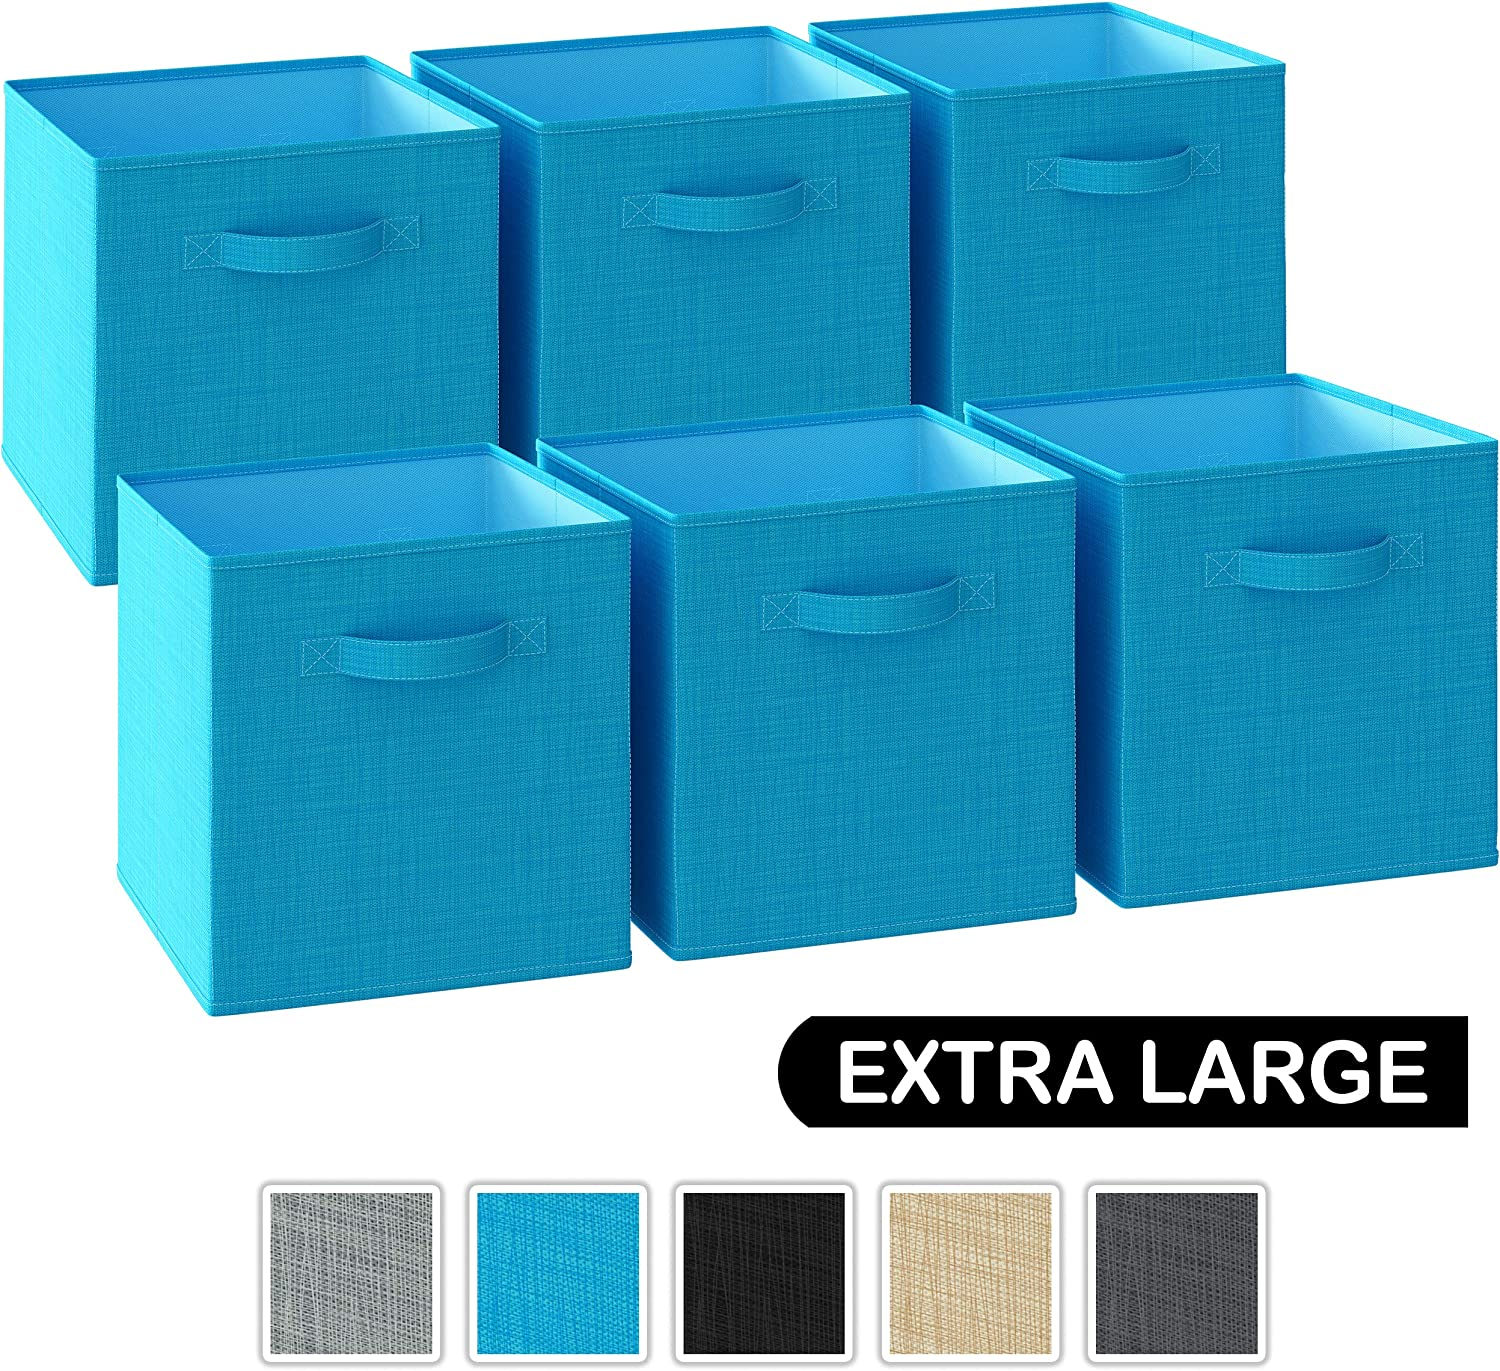 13x13x13 Large Storage Cubes - Set of 6 Storage Bins | Features Dual Handles | Cube Storage Bins | Foldable Closet Organizers and Storage | Fabric Storage Box for Home and Office (Aqua Blue)